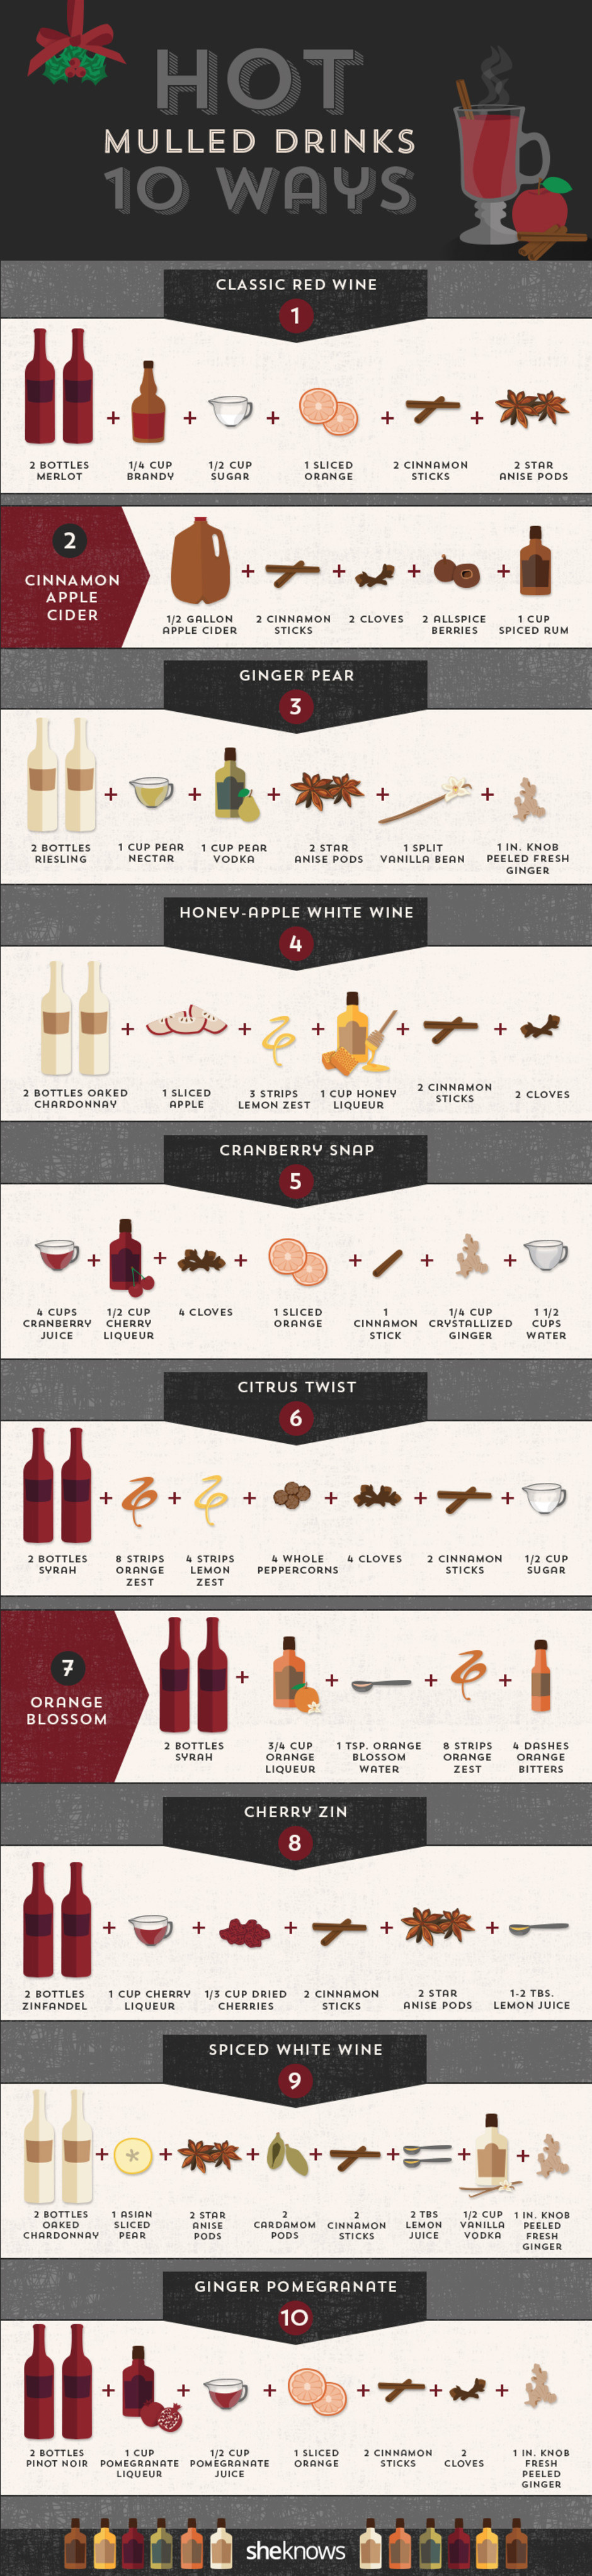 Hot Mulled Drinks 10 Ways